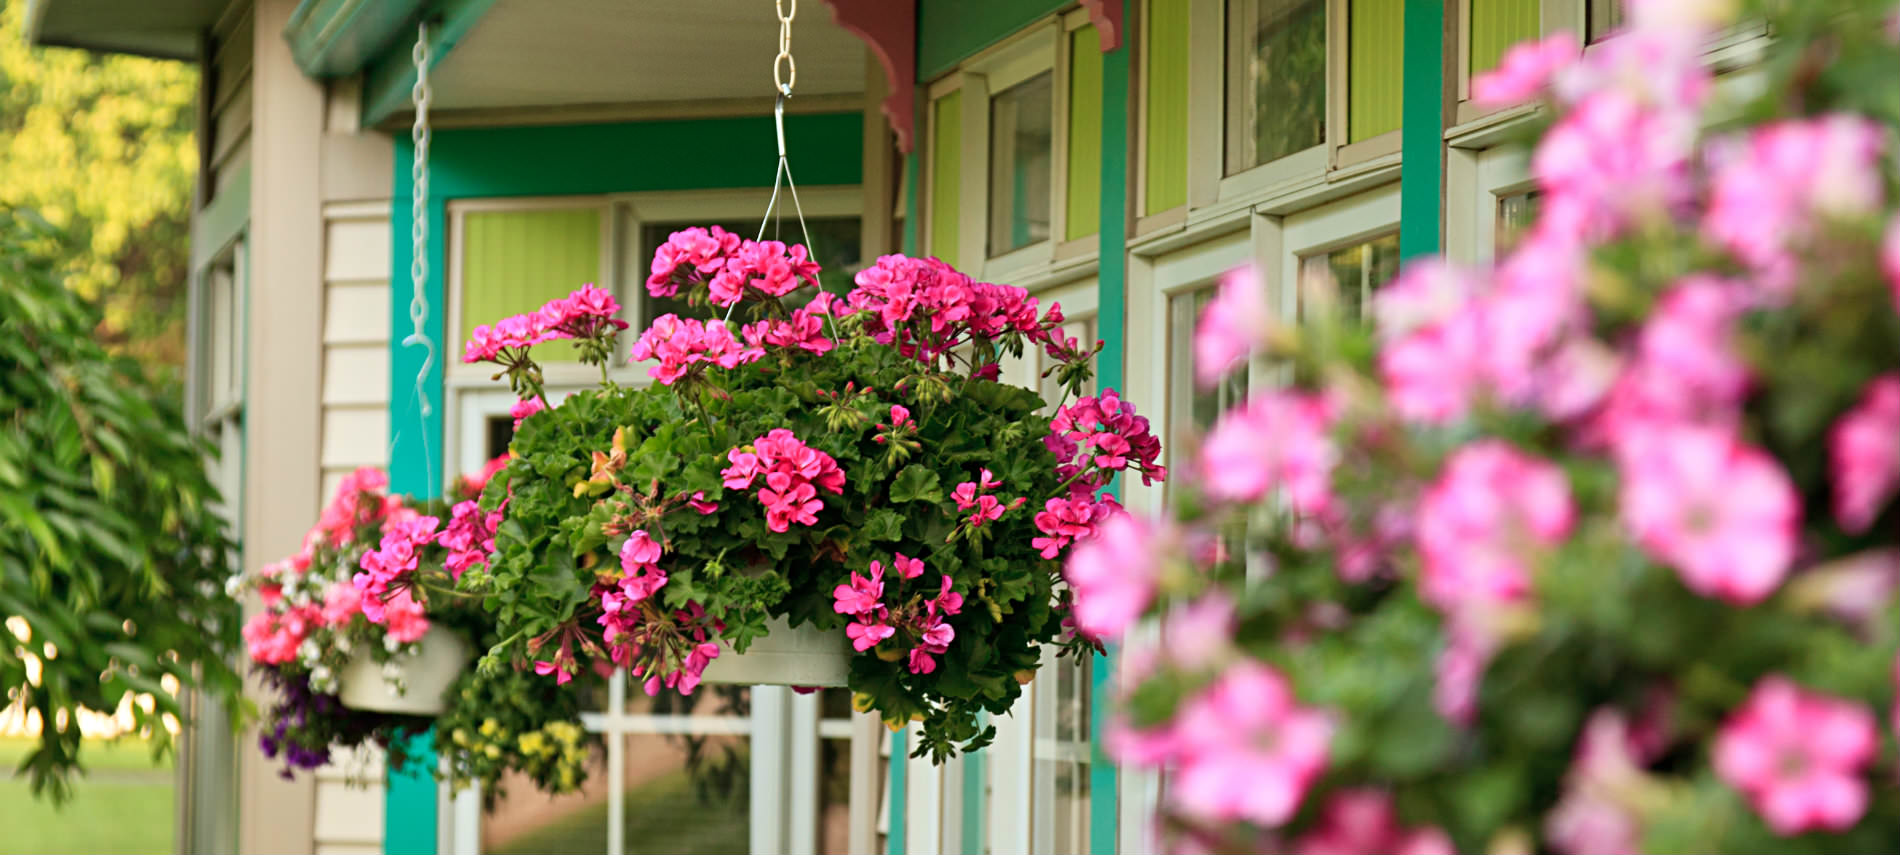 Hanging pink flowers with greenery on porch, yellow house with green trimmed windows